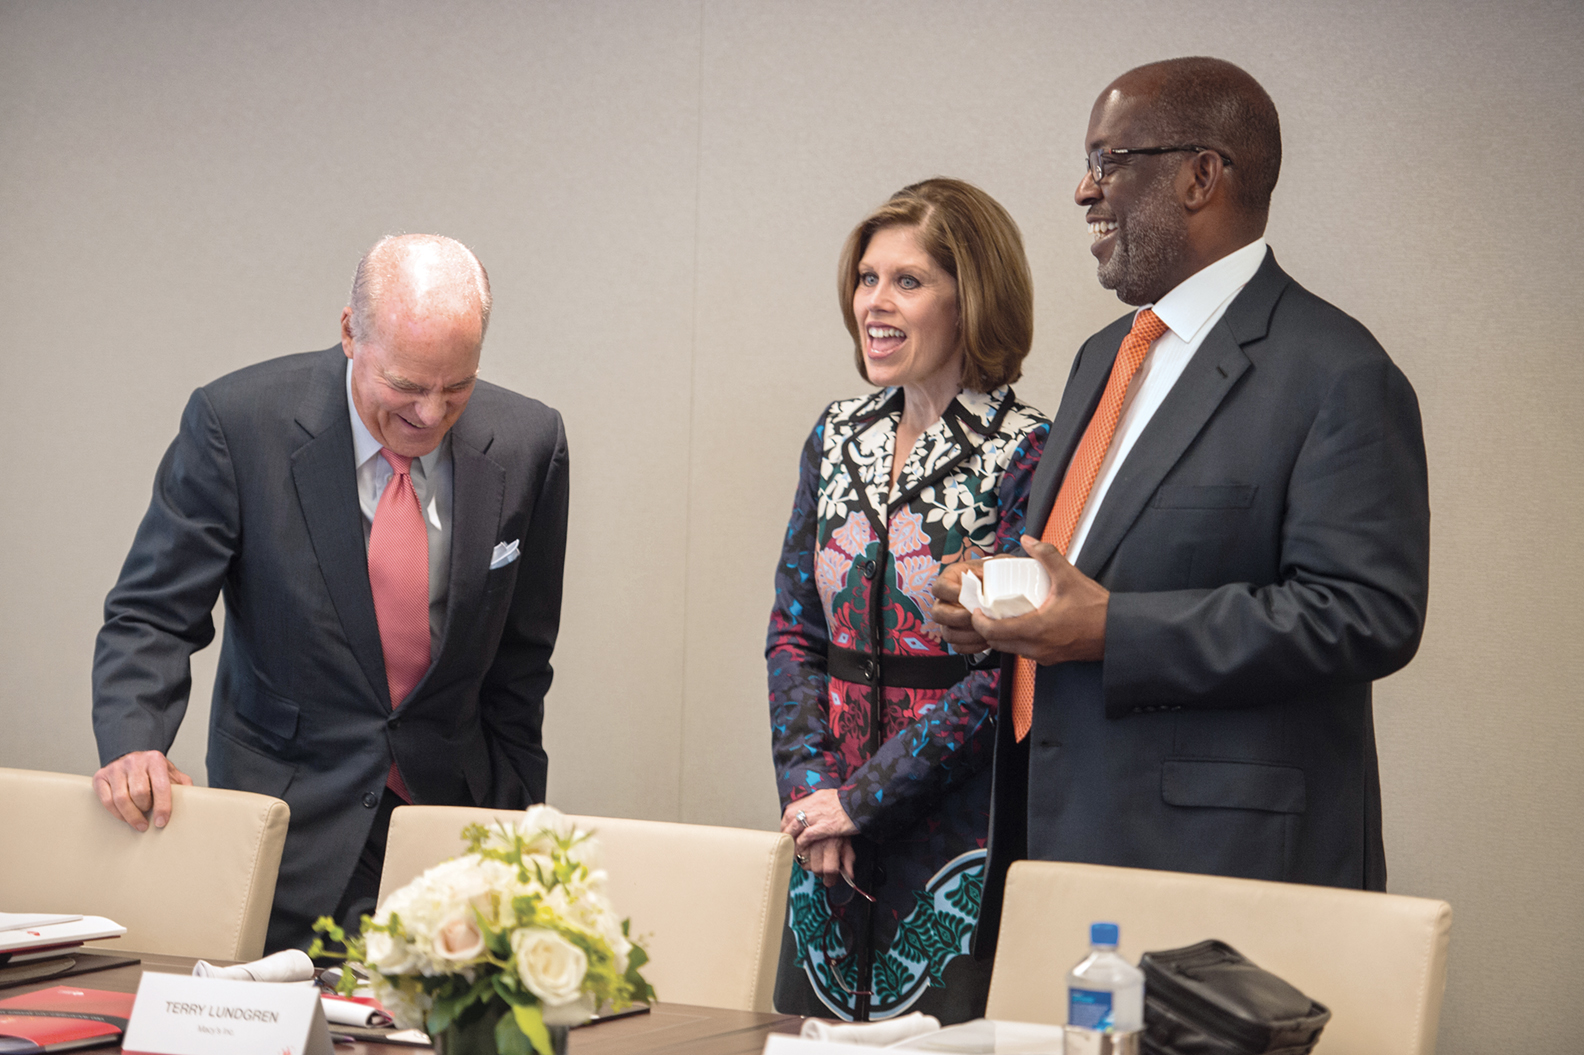 Tyson was instrumental in forming the American Heart Association's CEO Roundtable in 2013, along with association CEO Nancy Brown, Henry Kravis, co-founder of private-equity giant KKR, and other leading executives.